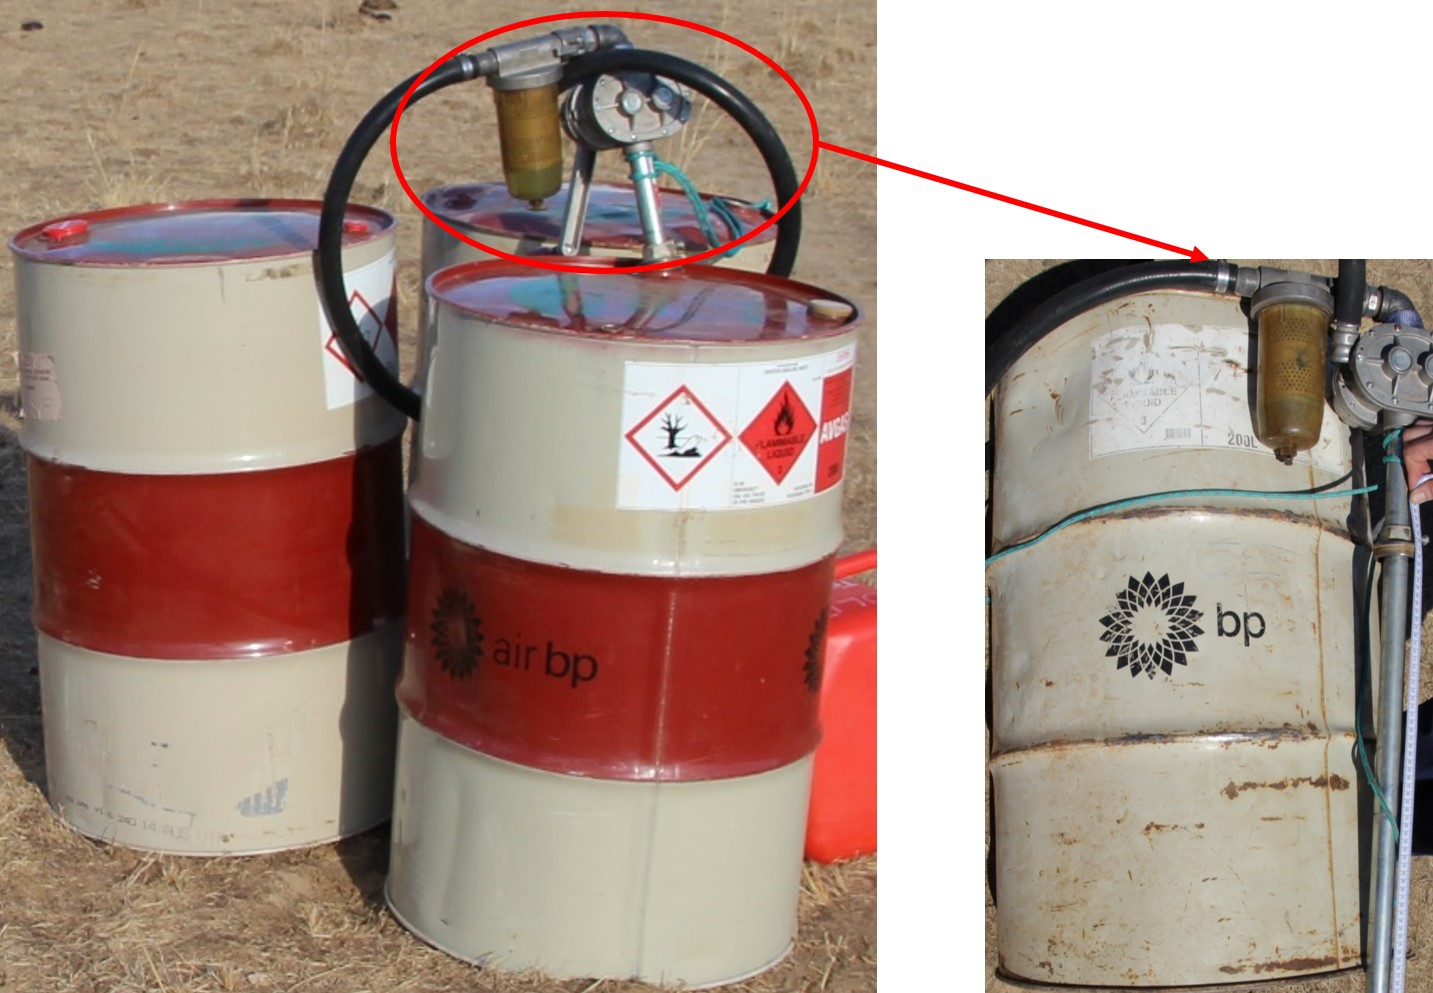 Figure 7: Drum fuel supply with a close-up (right) of the older, rusty and dented Avgas fuel drum. The left picture shows the drum fuel hand pump positioned in the newer of the two open drums